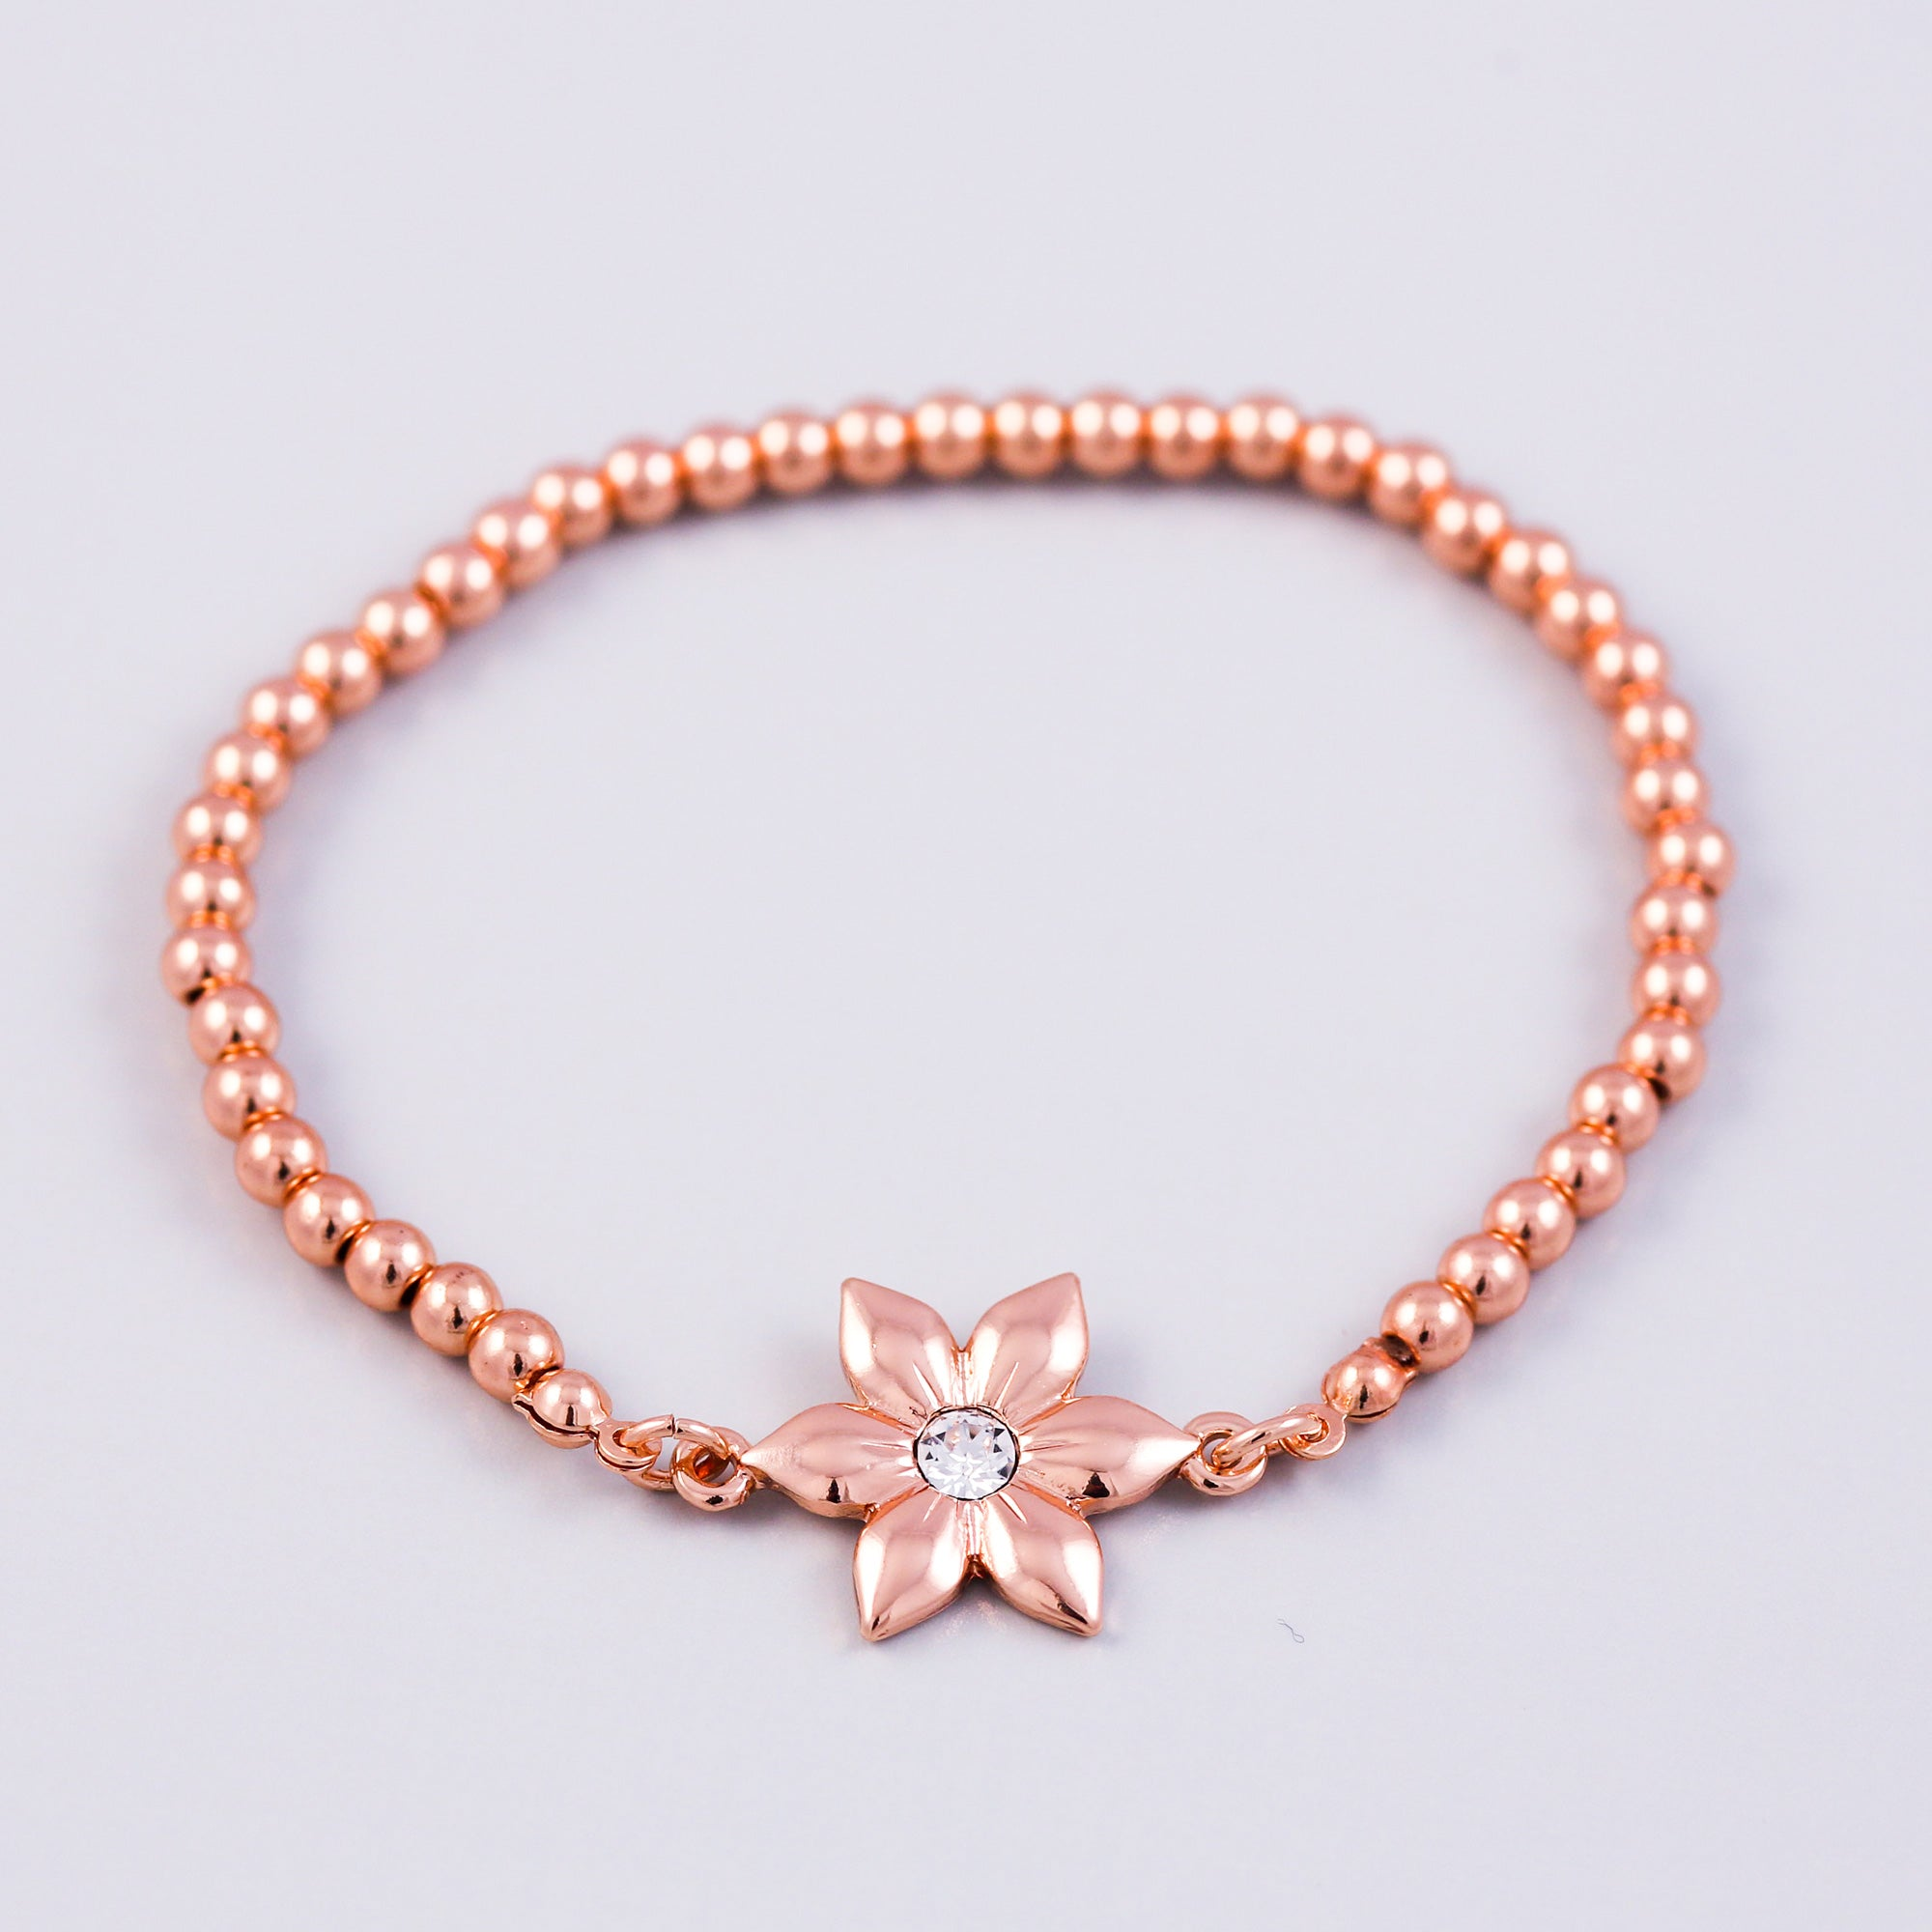 Flower Bracelet | Bridal Jewellery | Rose Gold & Metallic Bead